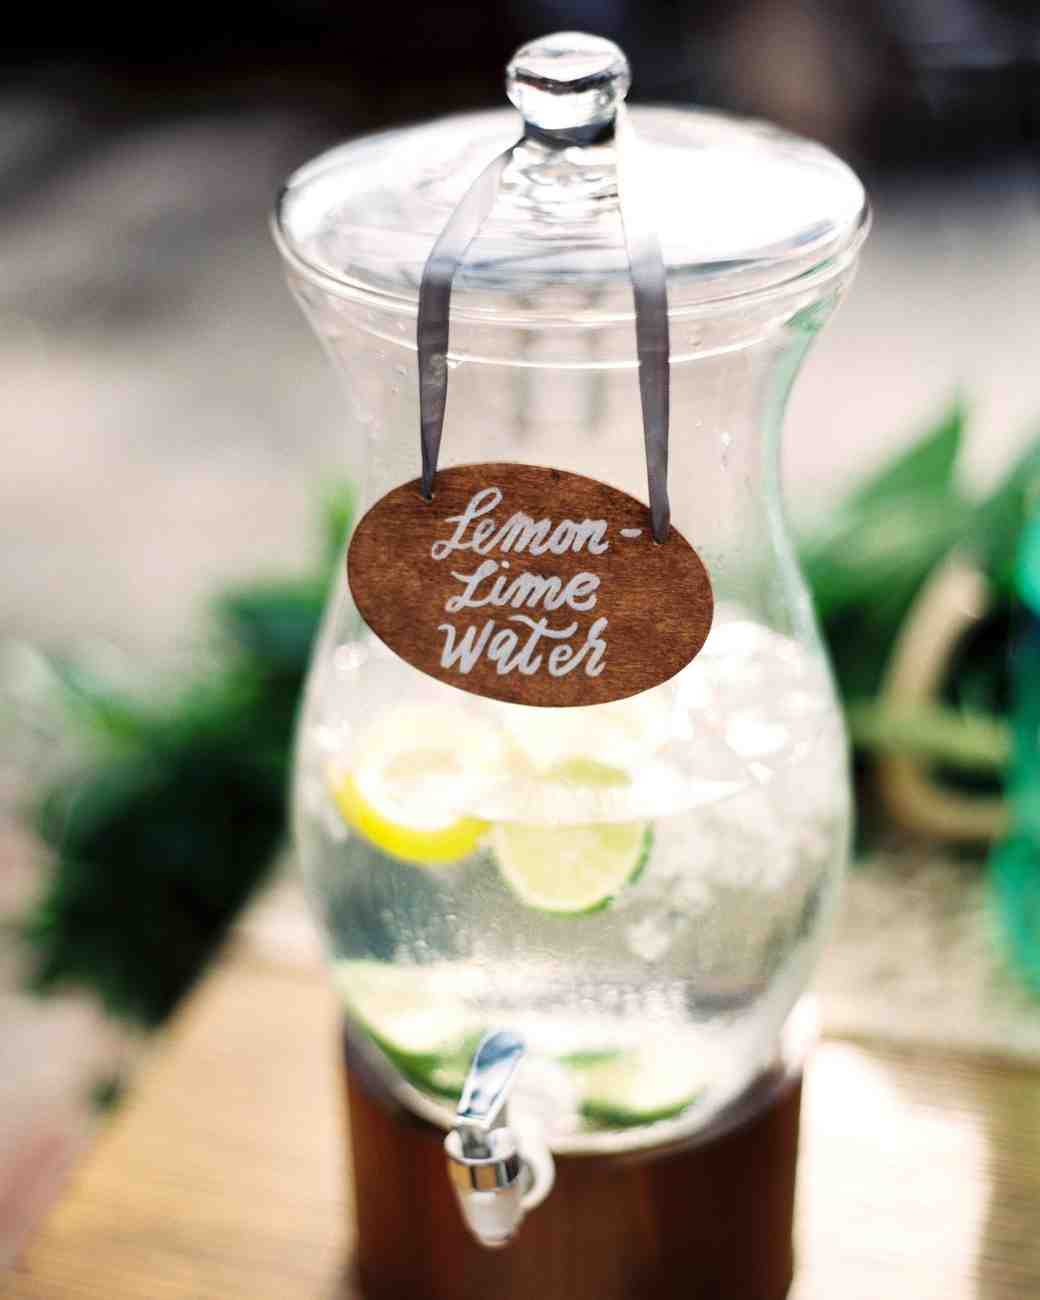 lemon lime water jug